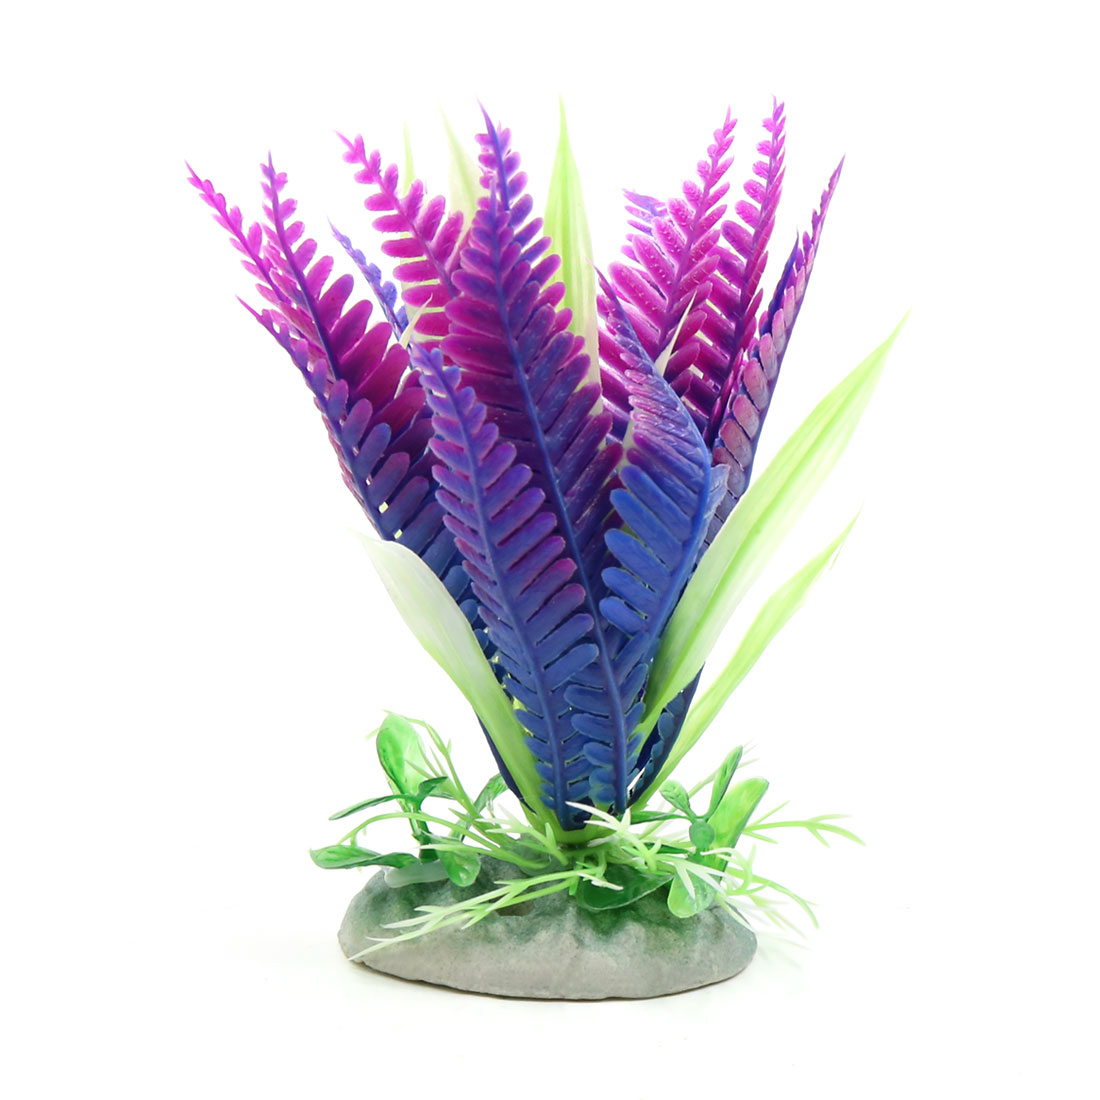 Purple Plastic Mini Plant Aquarium Fishbowl Decoration Home Decor w/ Stand